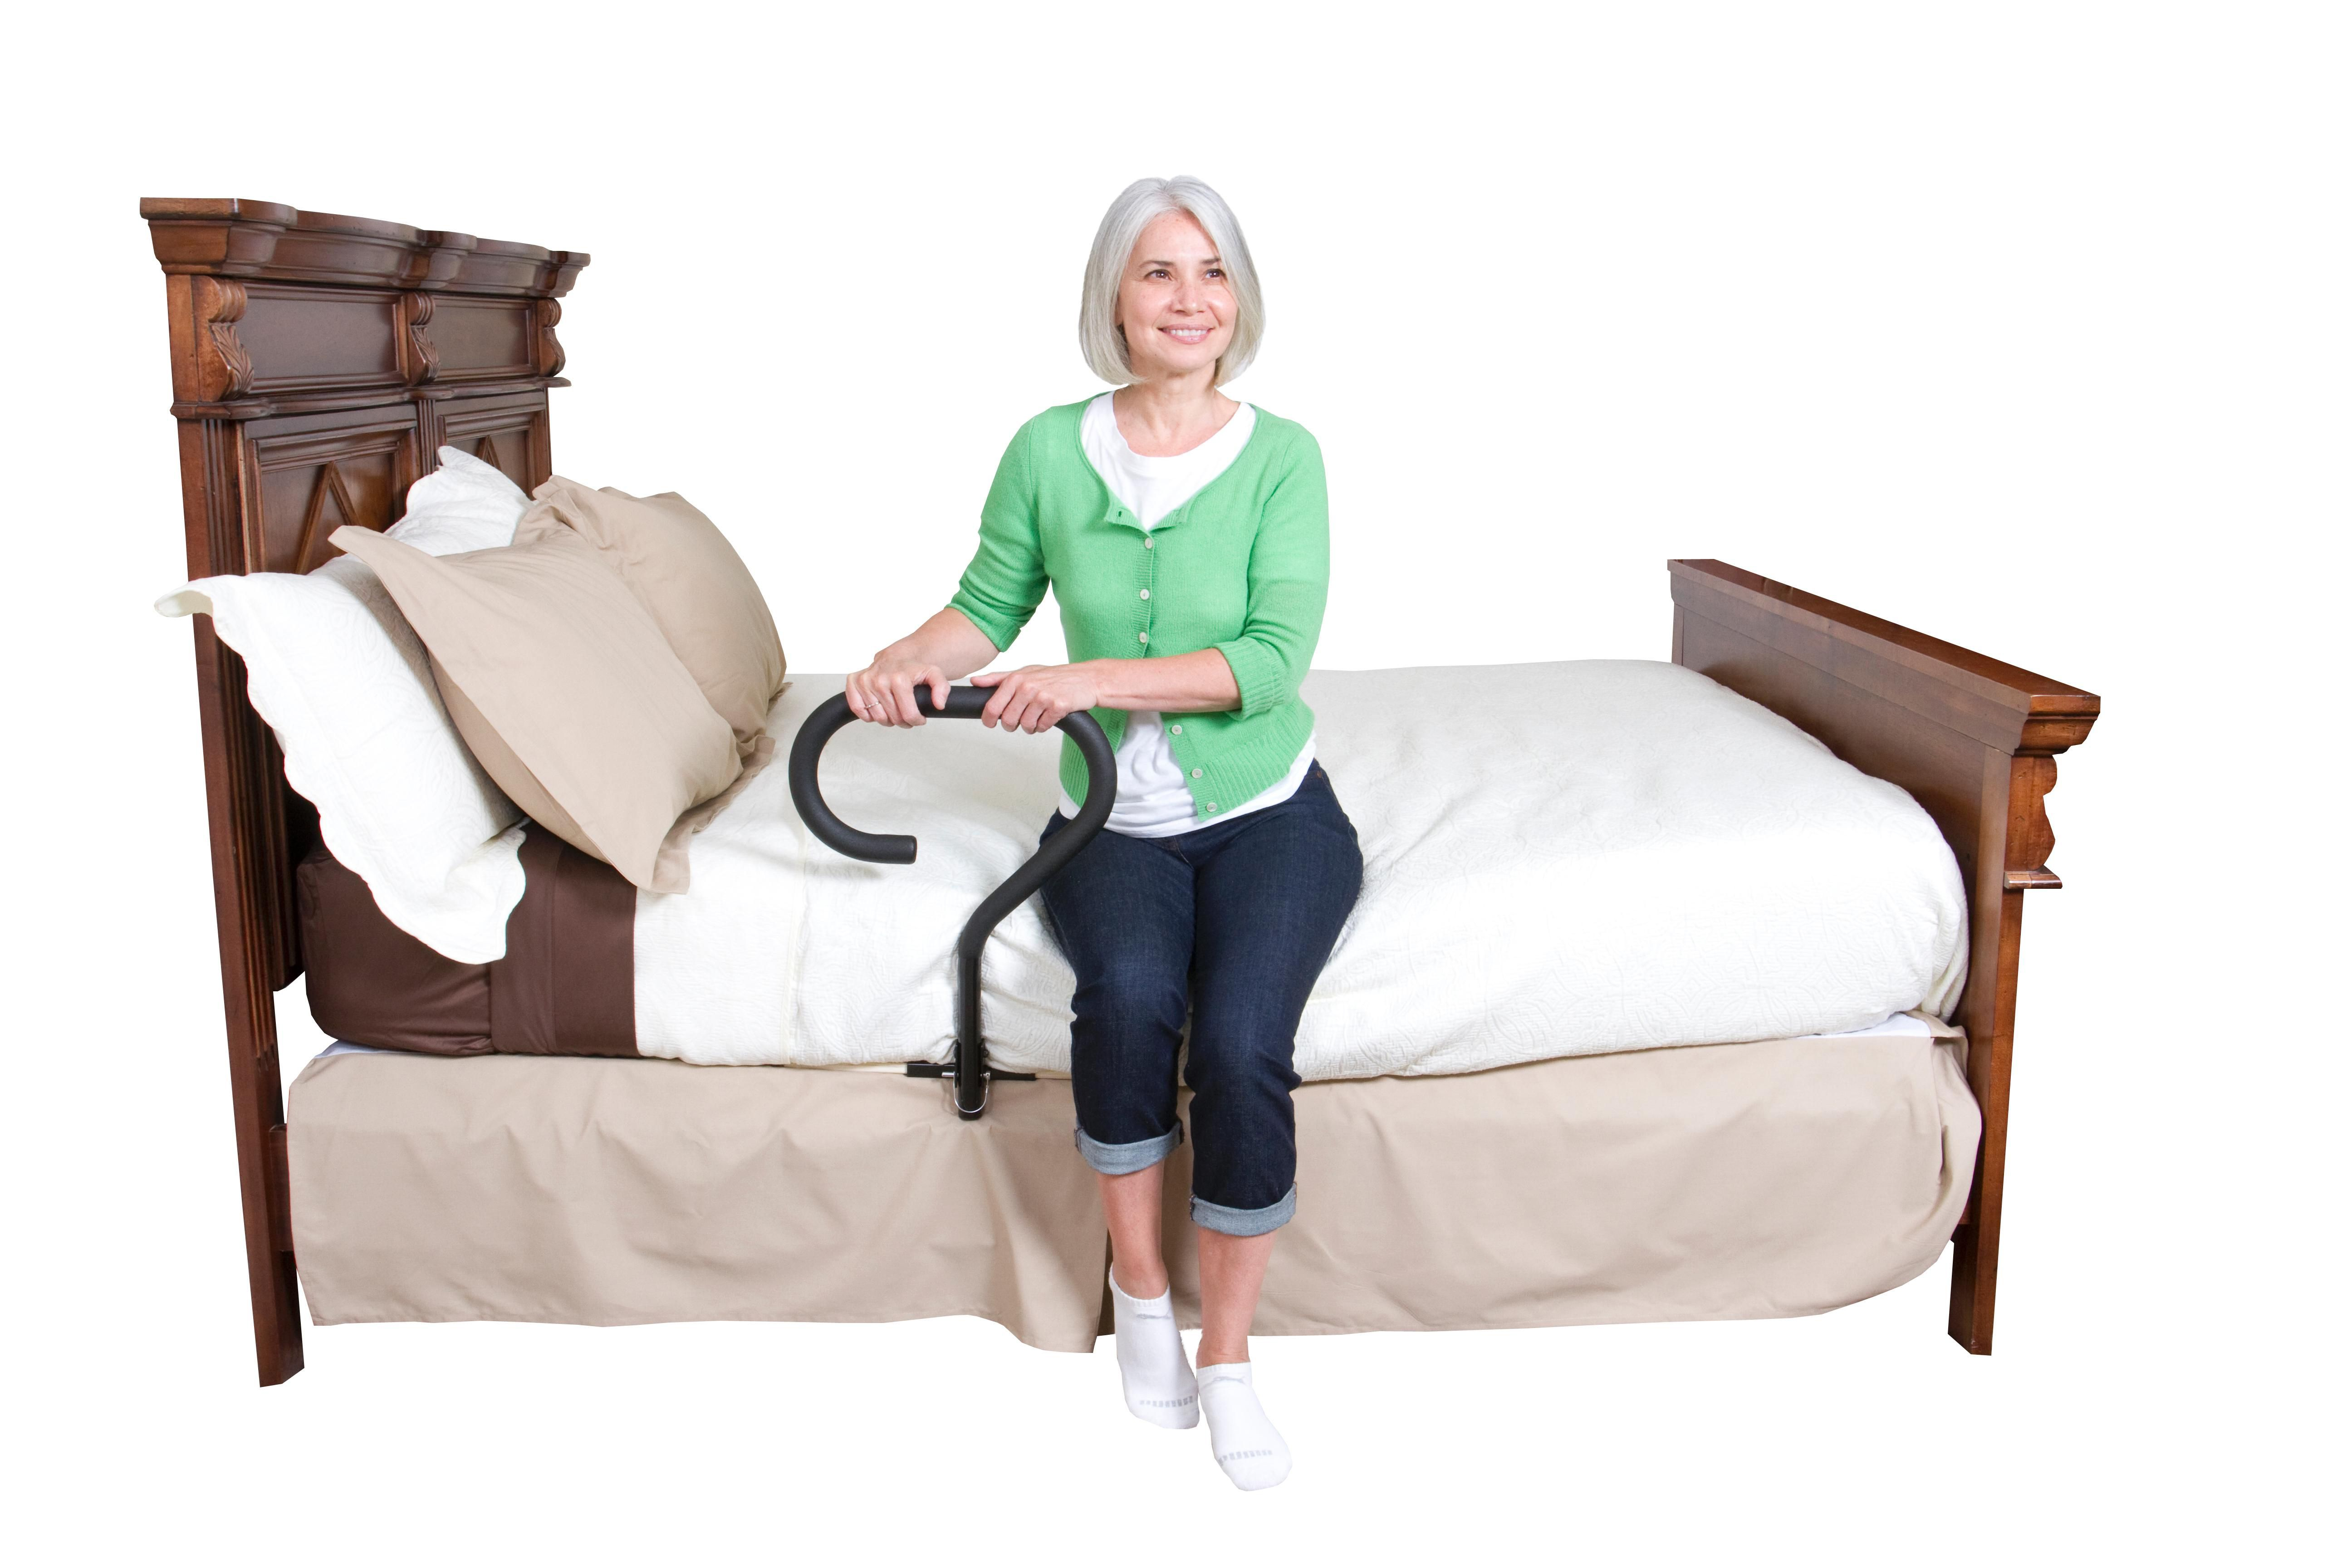 stander padded home rails down rail handle com walmart swing ip for and bed elderly adult pouch assist safety